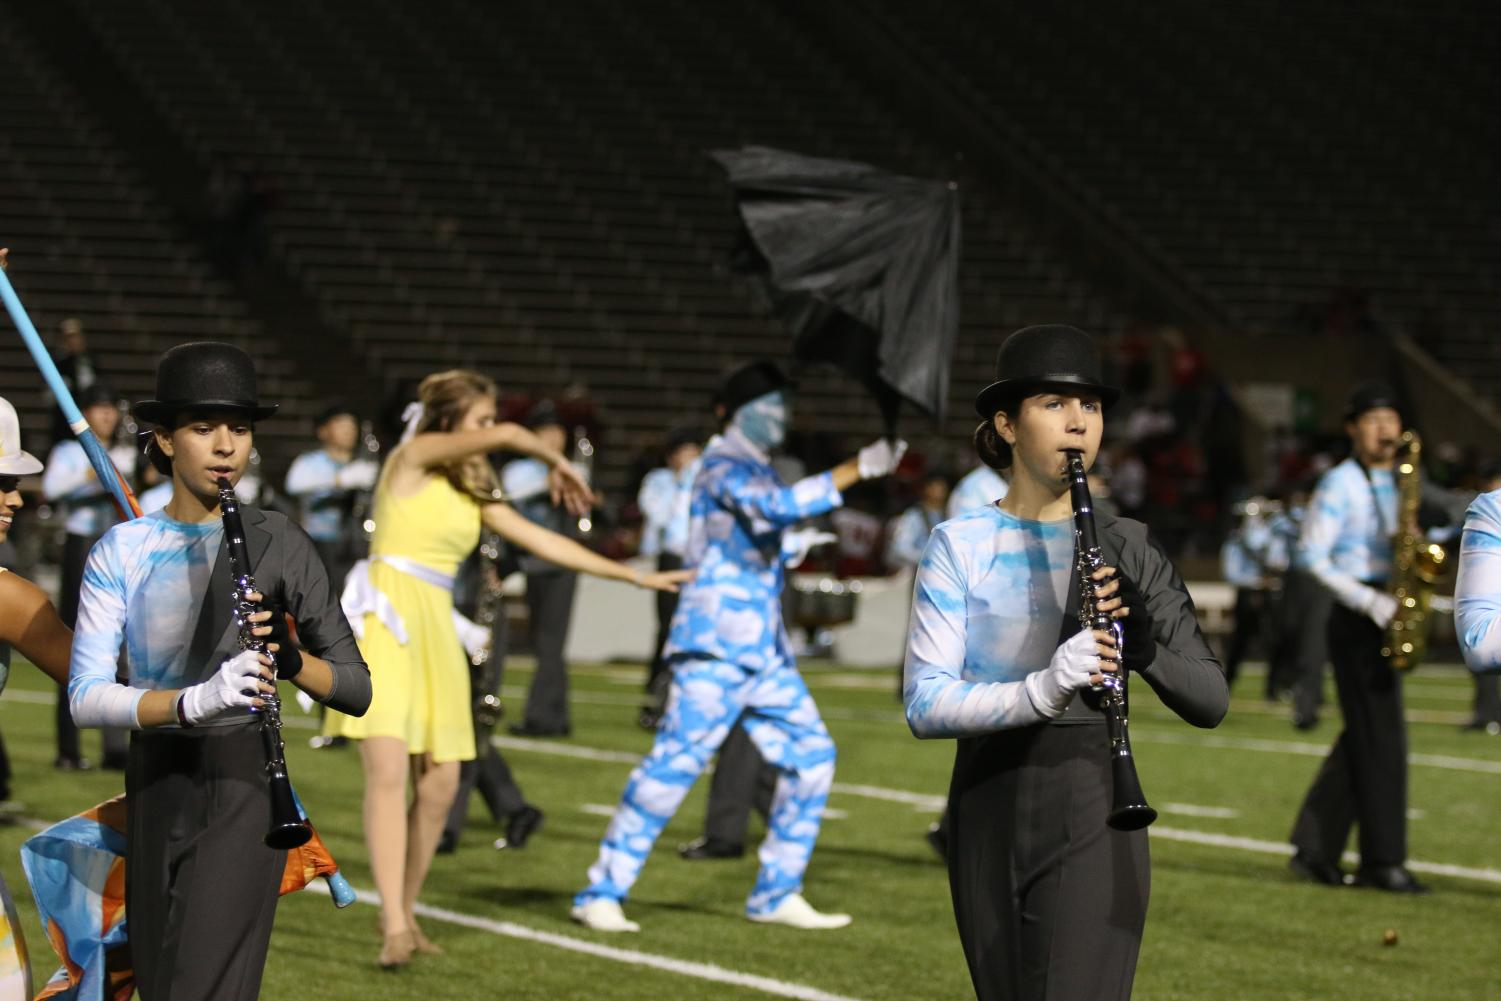 Sophomores Lauren Thomason and Brooke Fertig perform one of their routines during halftime, with marching band and color guard.